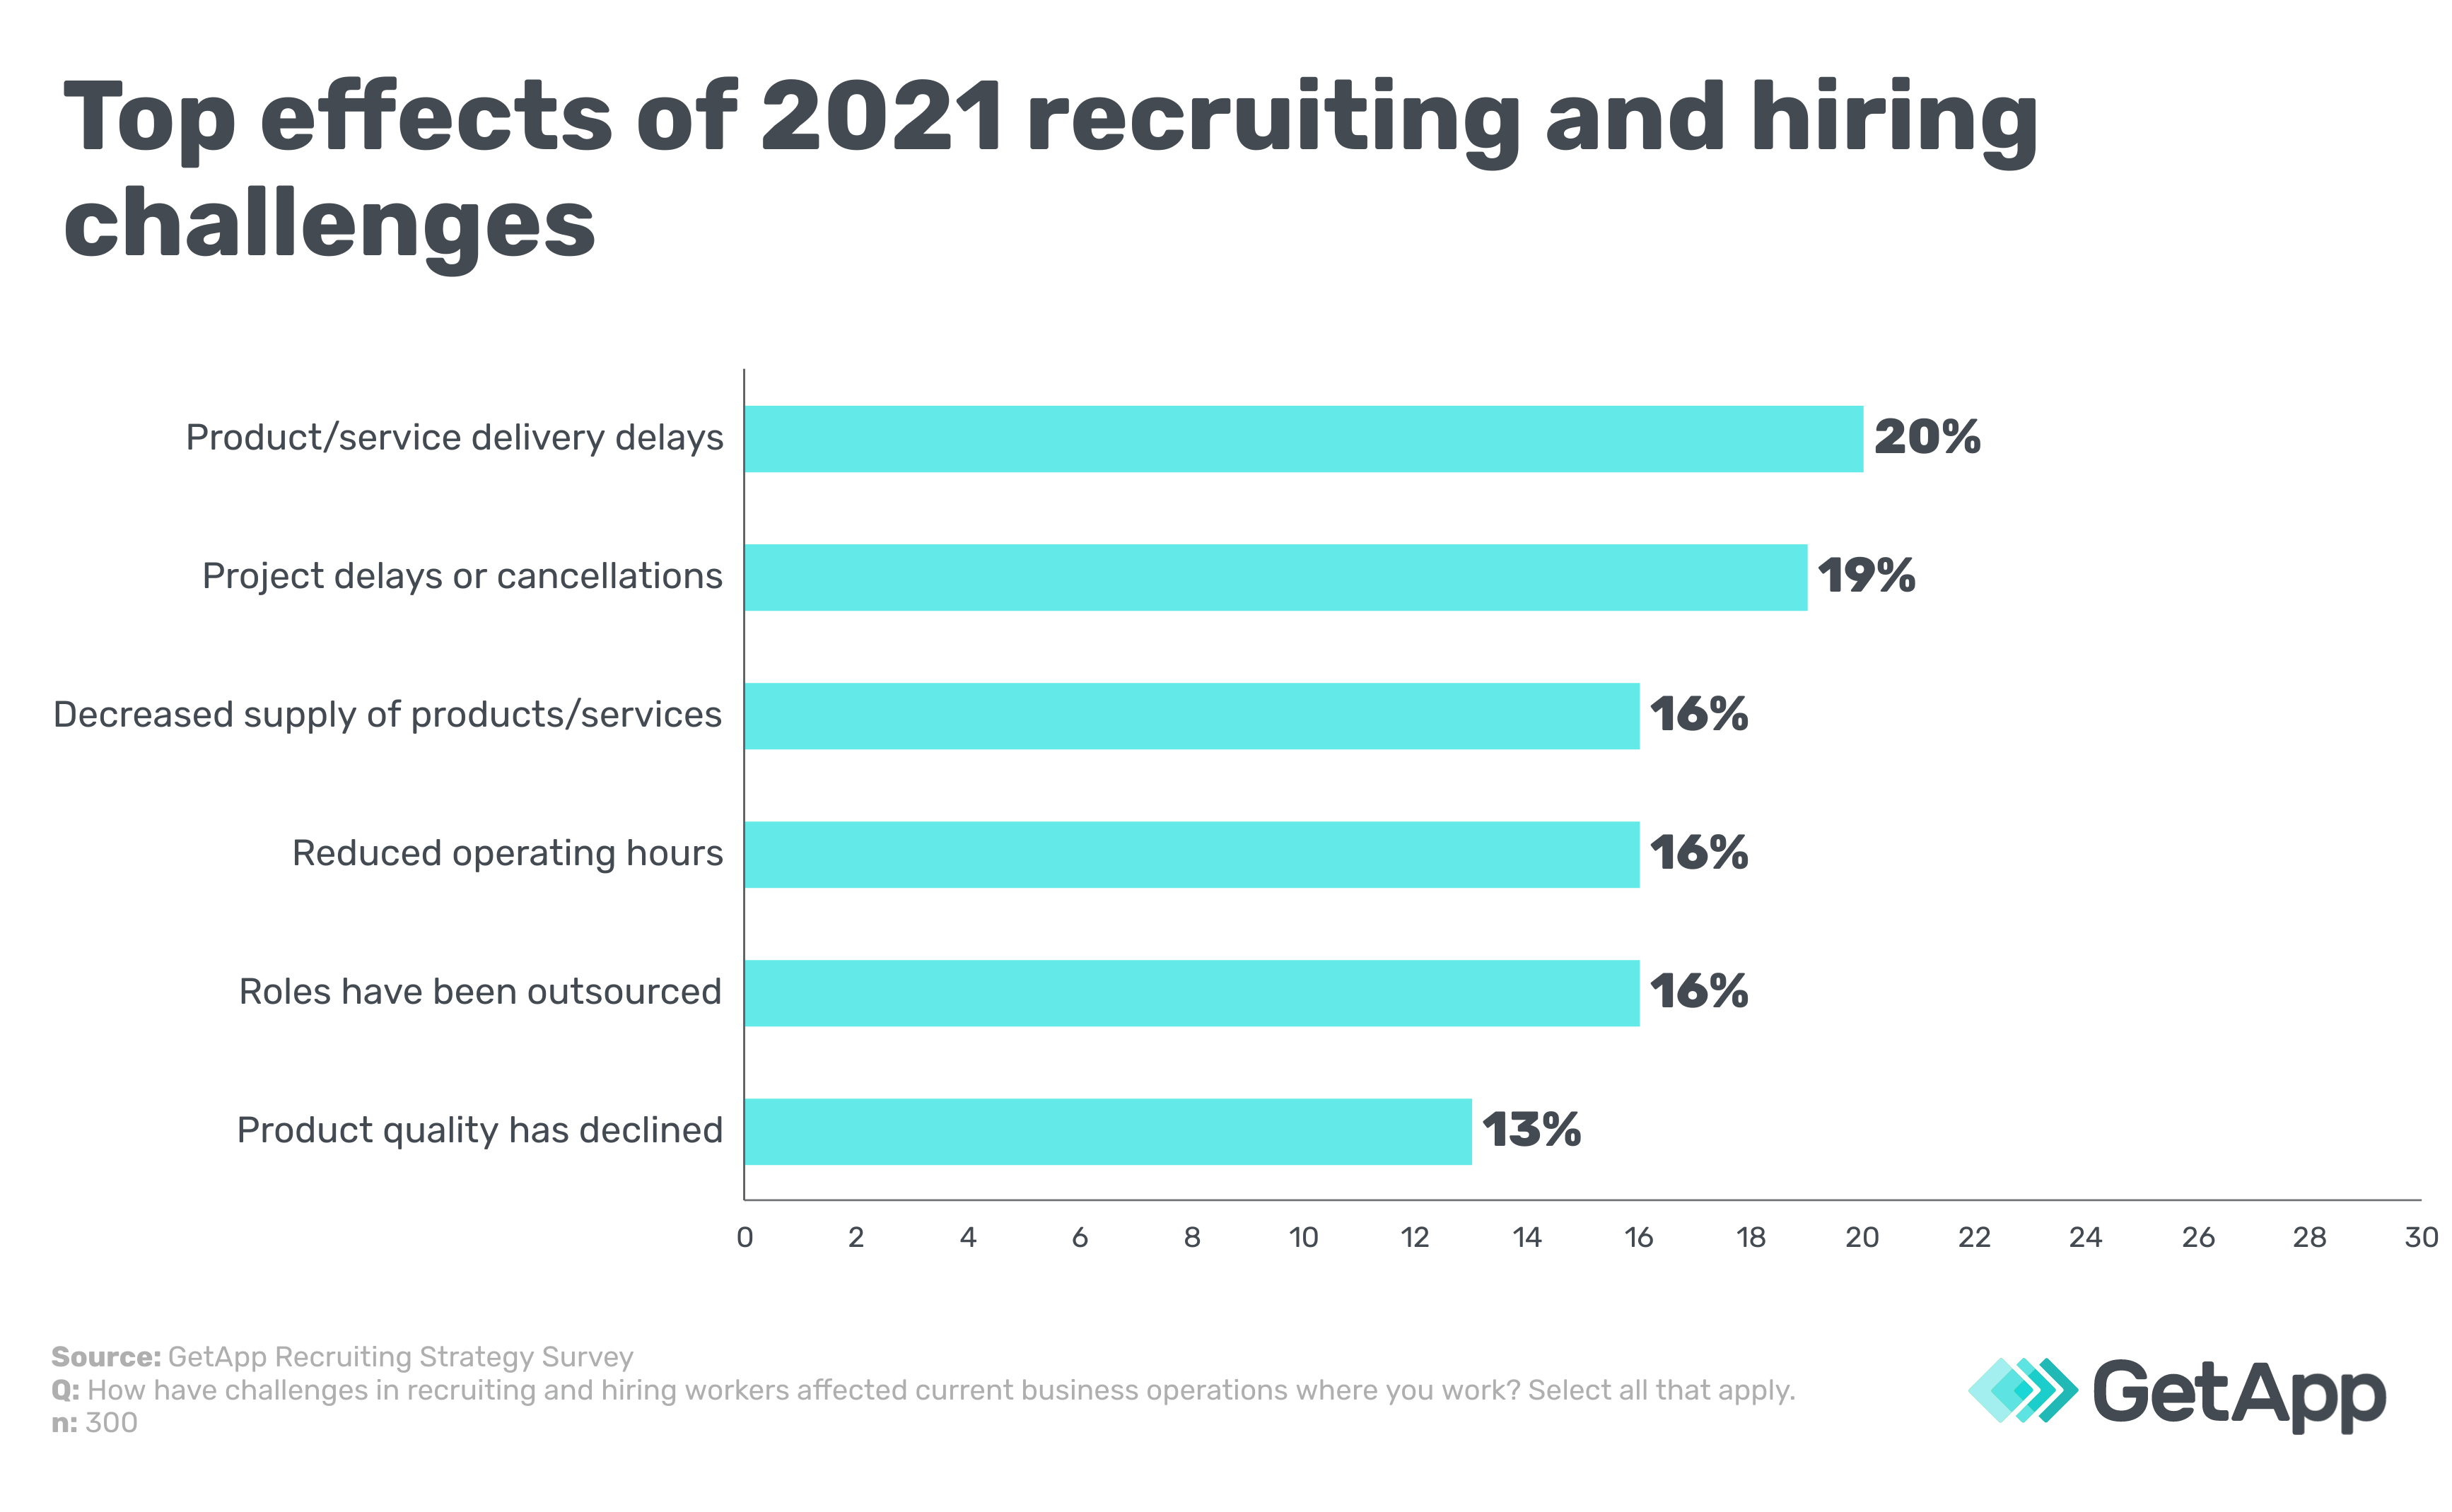 Top effects of 2021 recruiting and hiring challenges